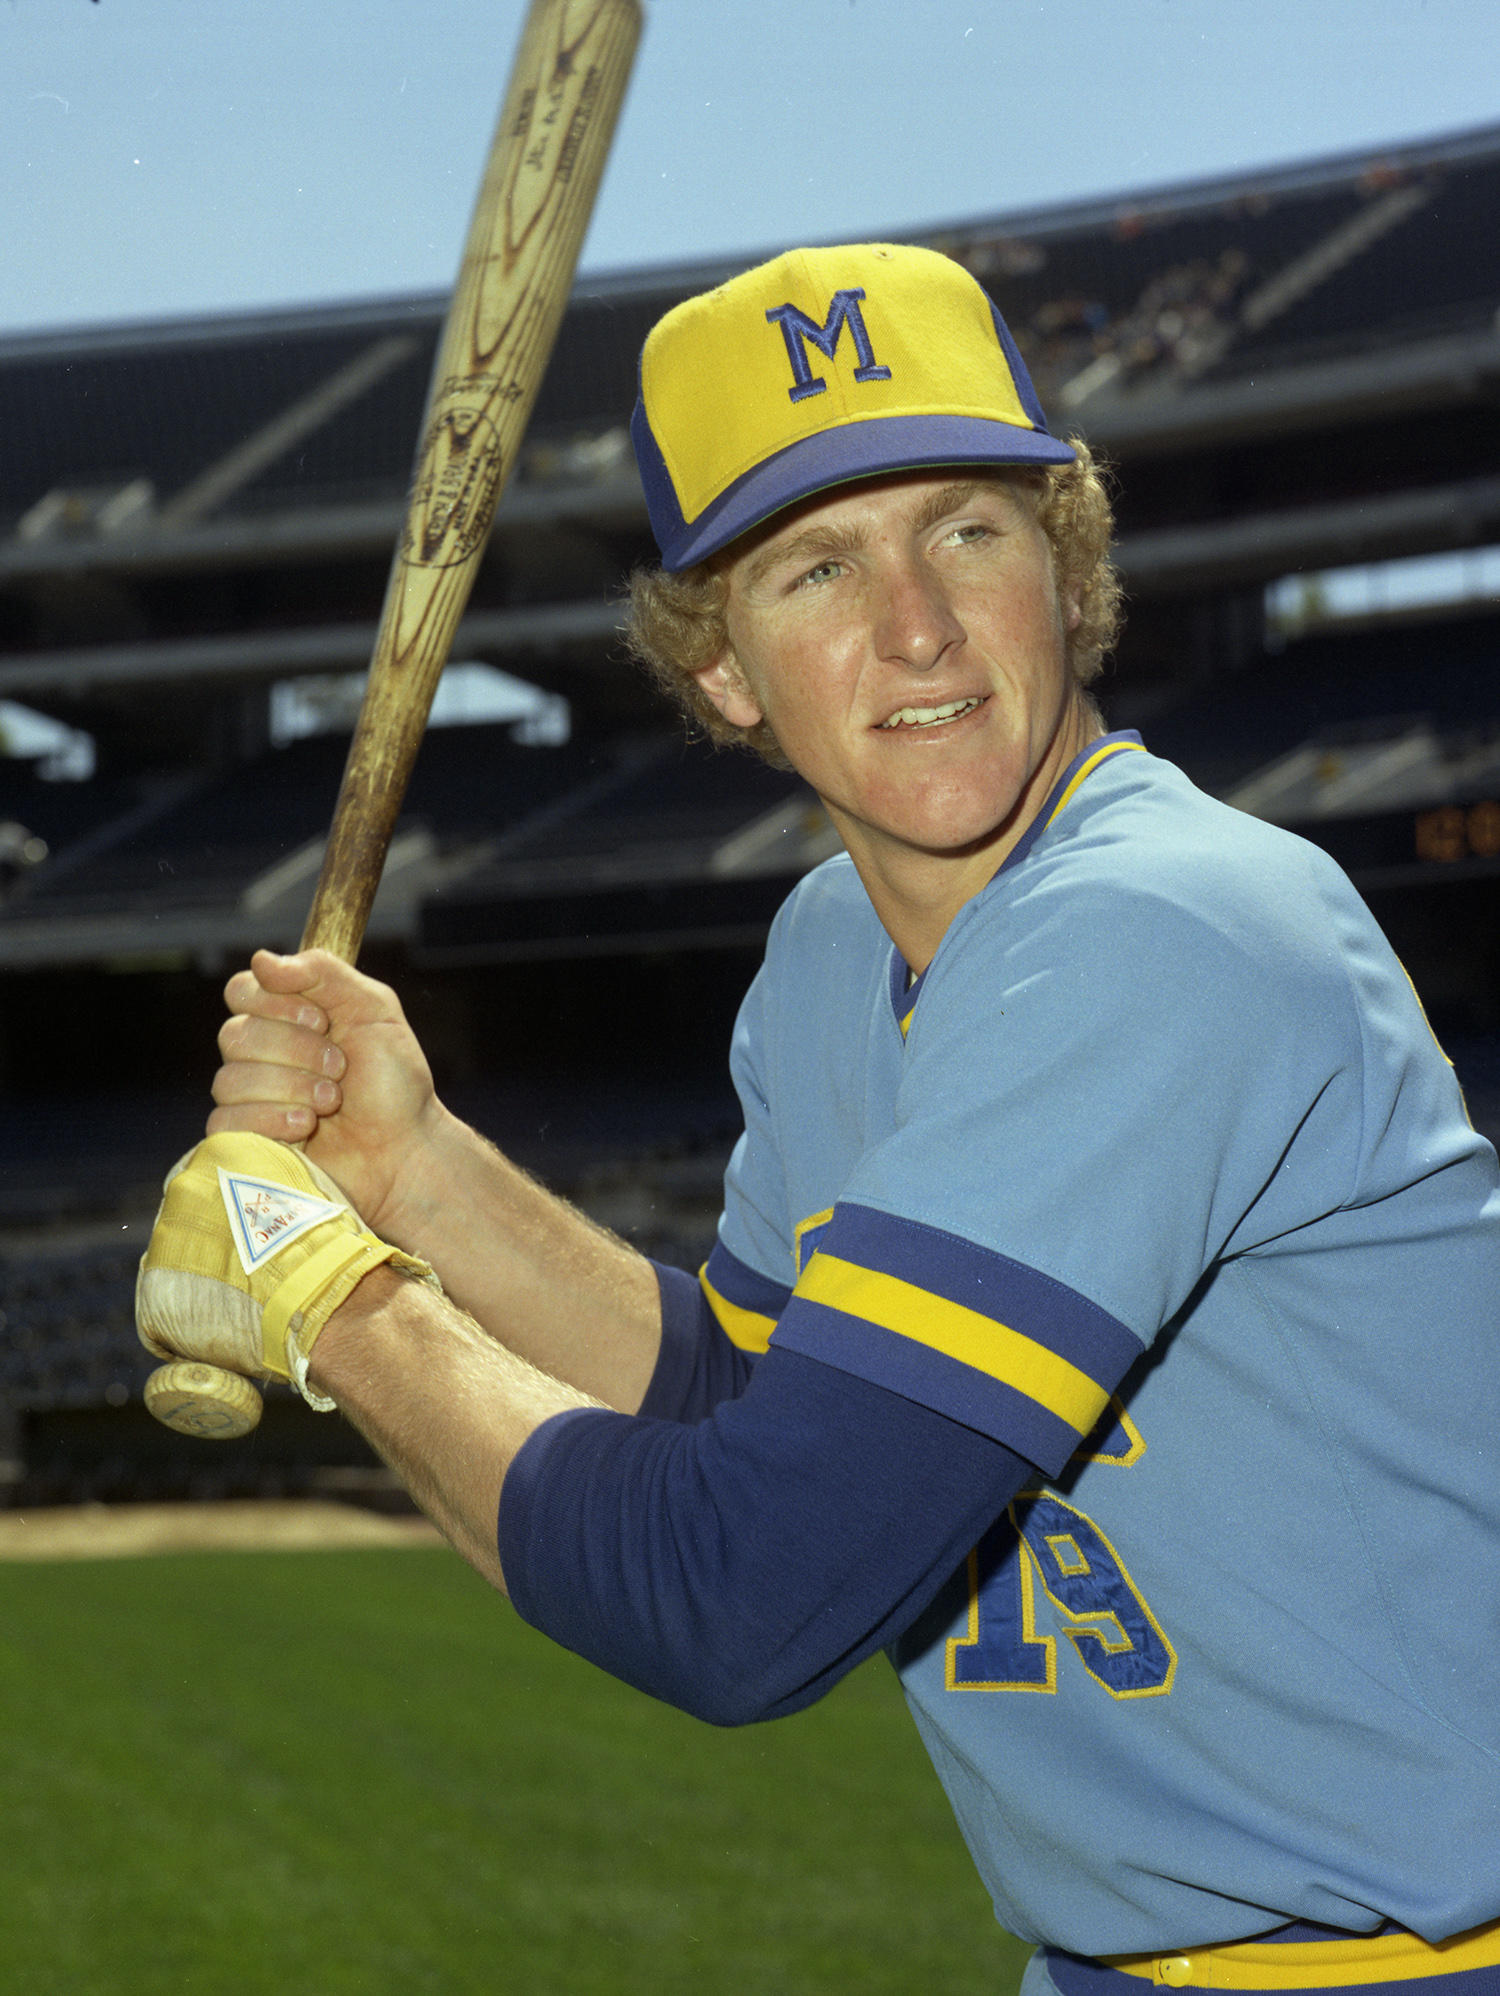 Robin Yount played for the Milwaukee Brewers for the entirety of his professional career, debuting as an 18-year-old in 1974. (Doug McWilliams / National Baseball Hall of Fame)